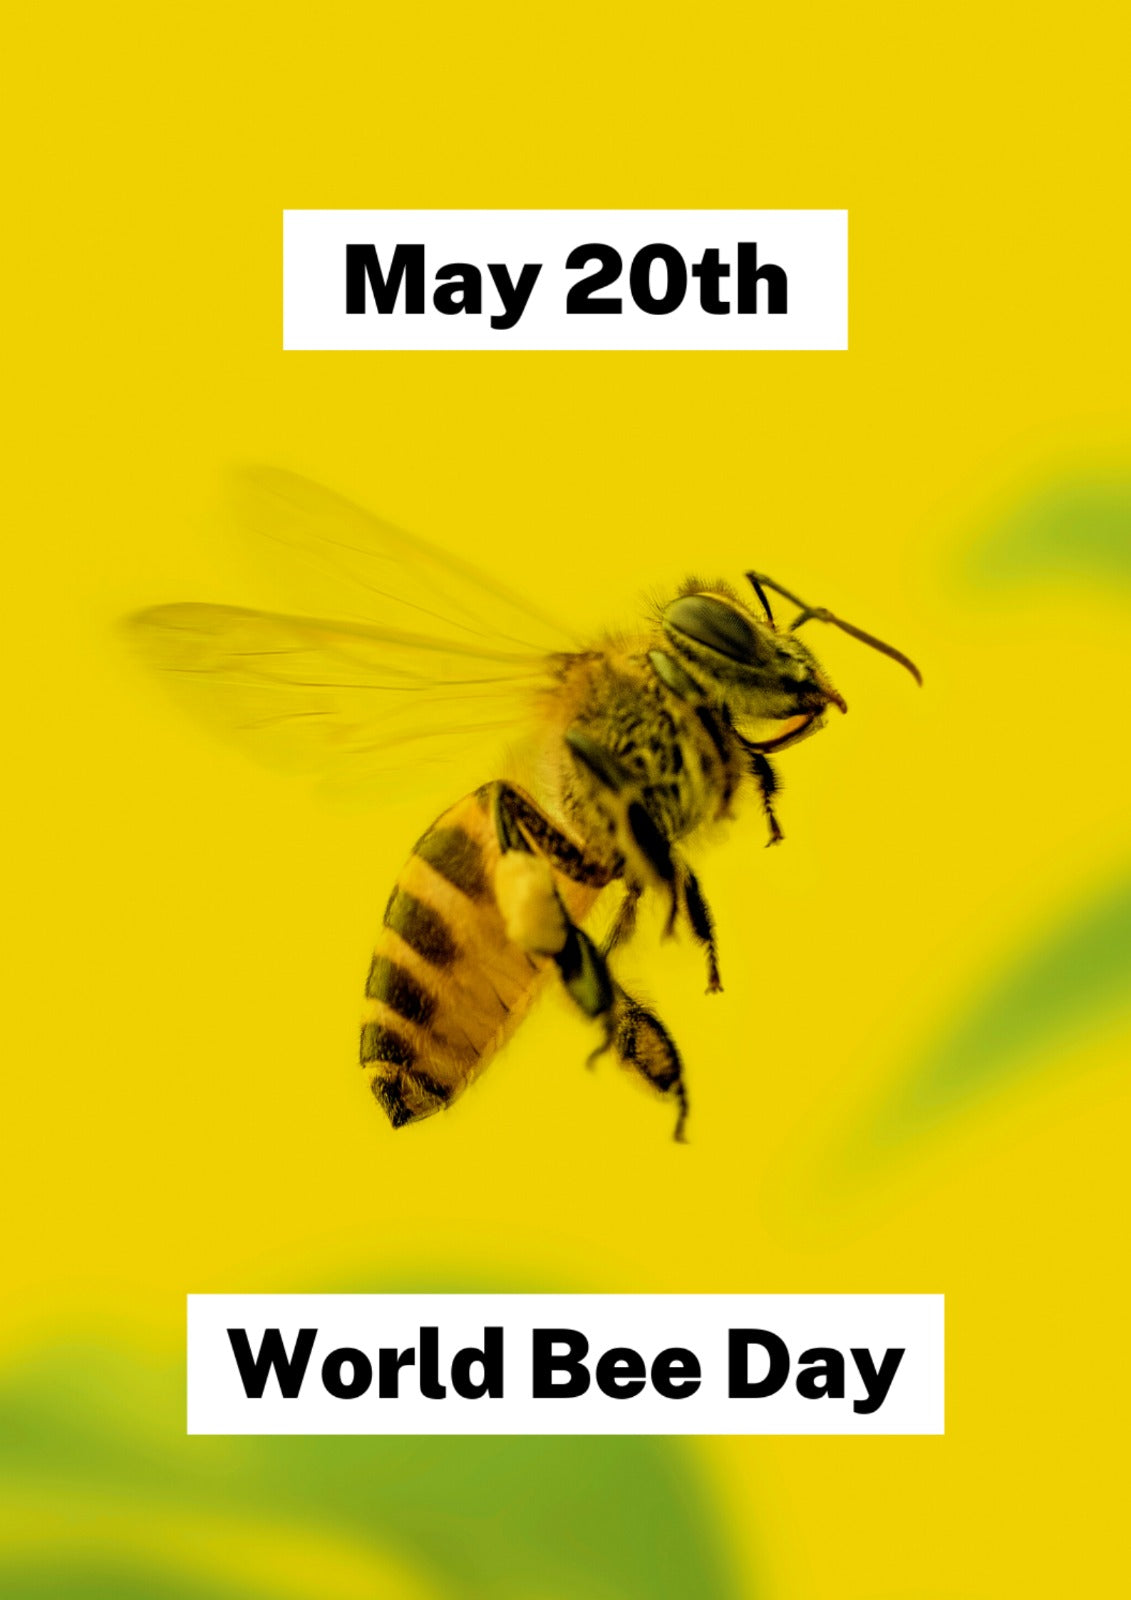 Photo of bee for World Bee Day